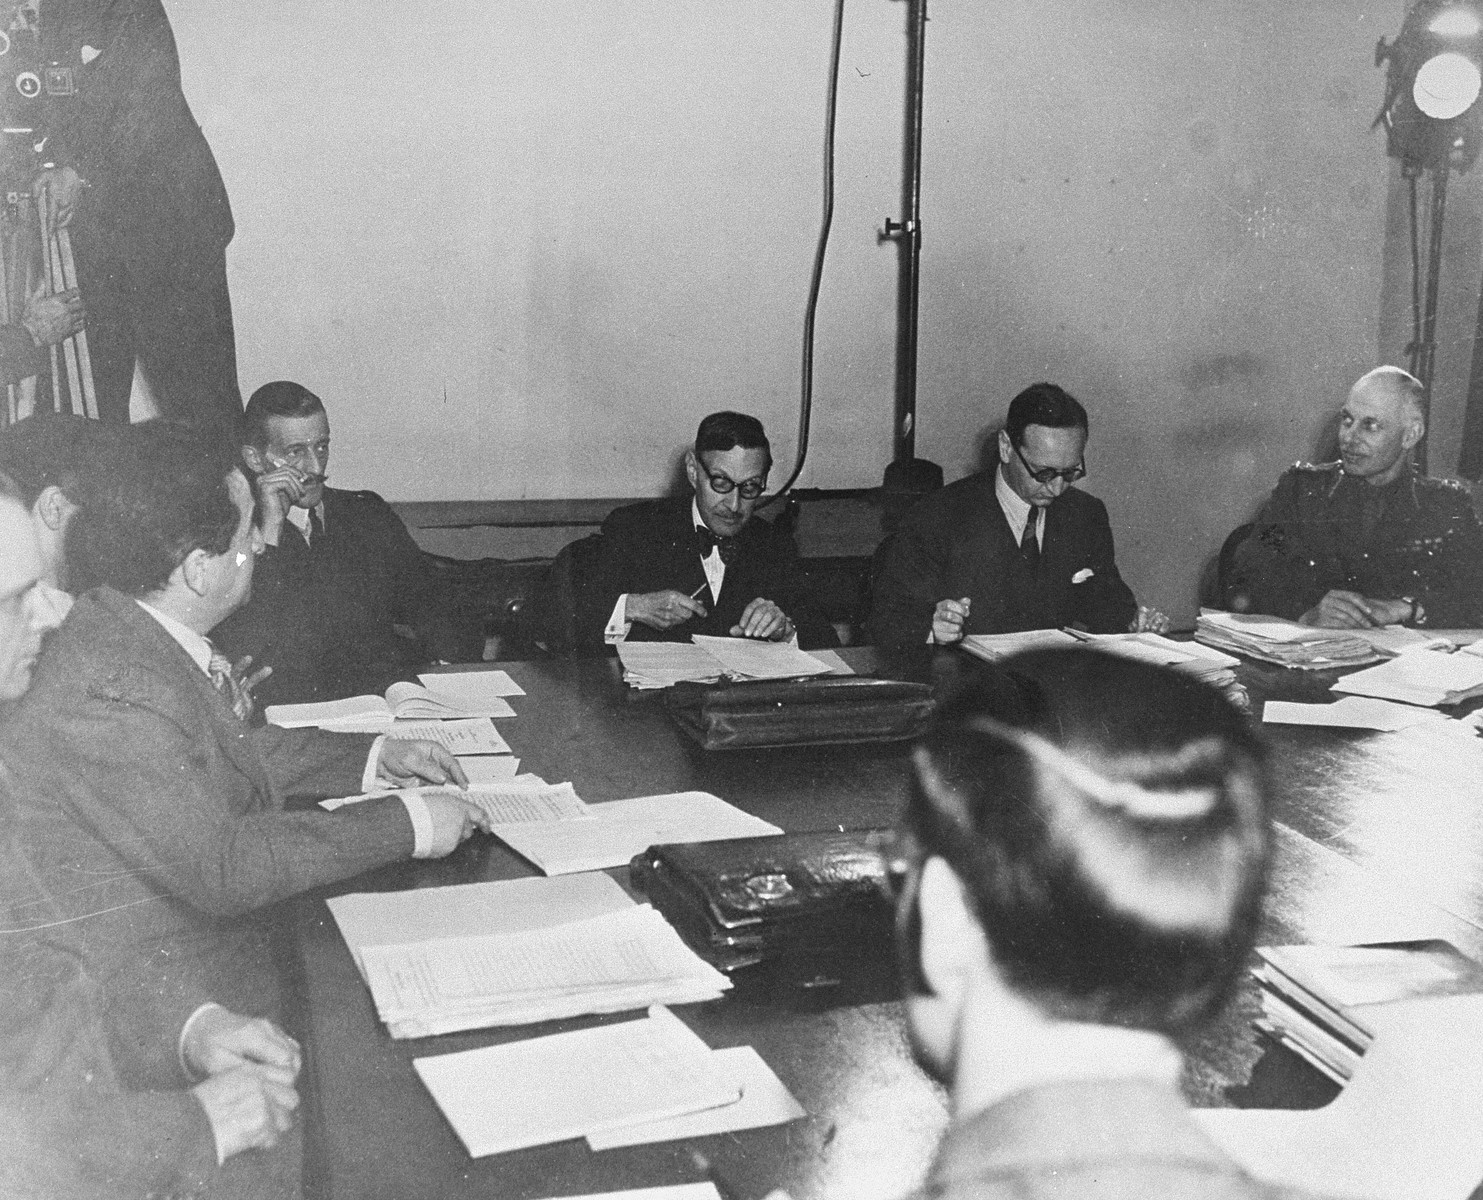 A meeting of the War Crimes Executive Committee, the body which signed the Allied agreement to create the International Militarty Tribunal to prosecute German war criminals at Nuremberg.